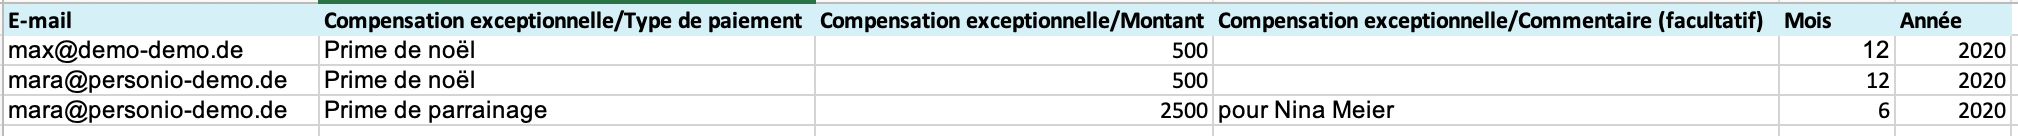 salaries-one-time-compensation-import_fr.png